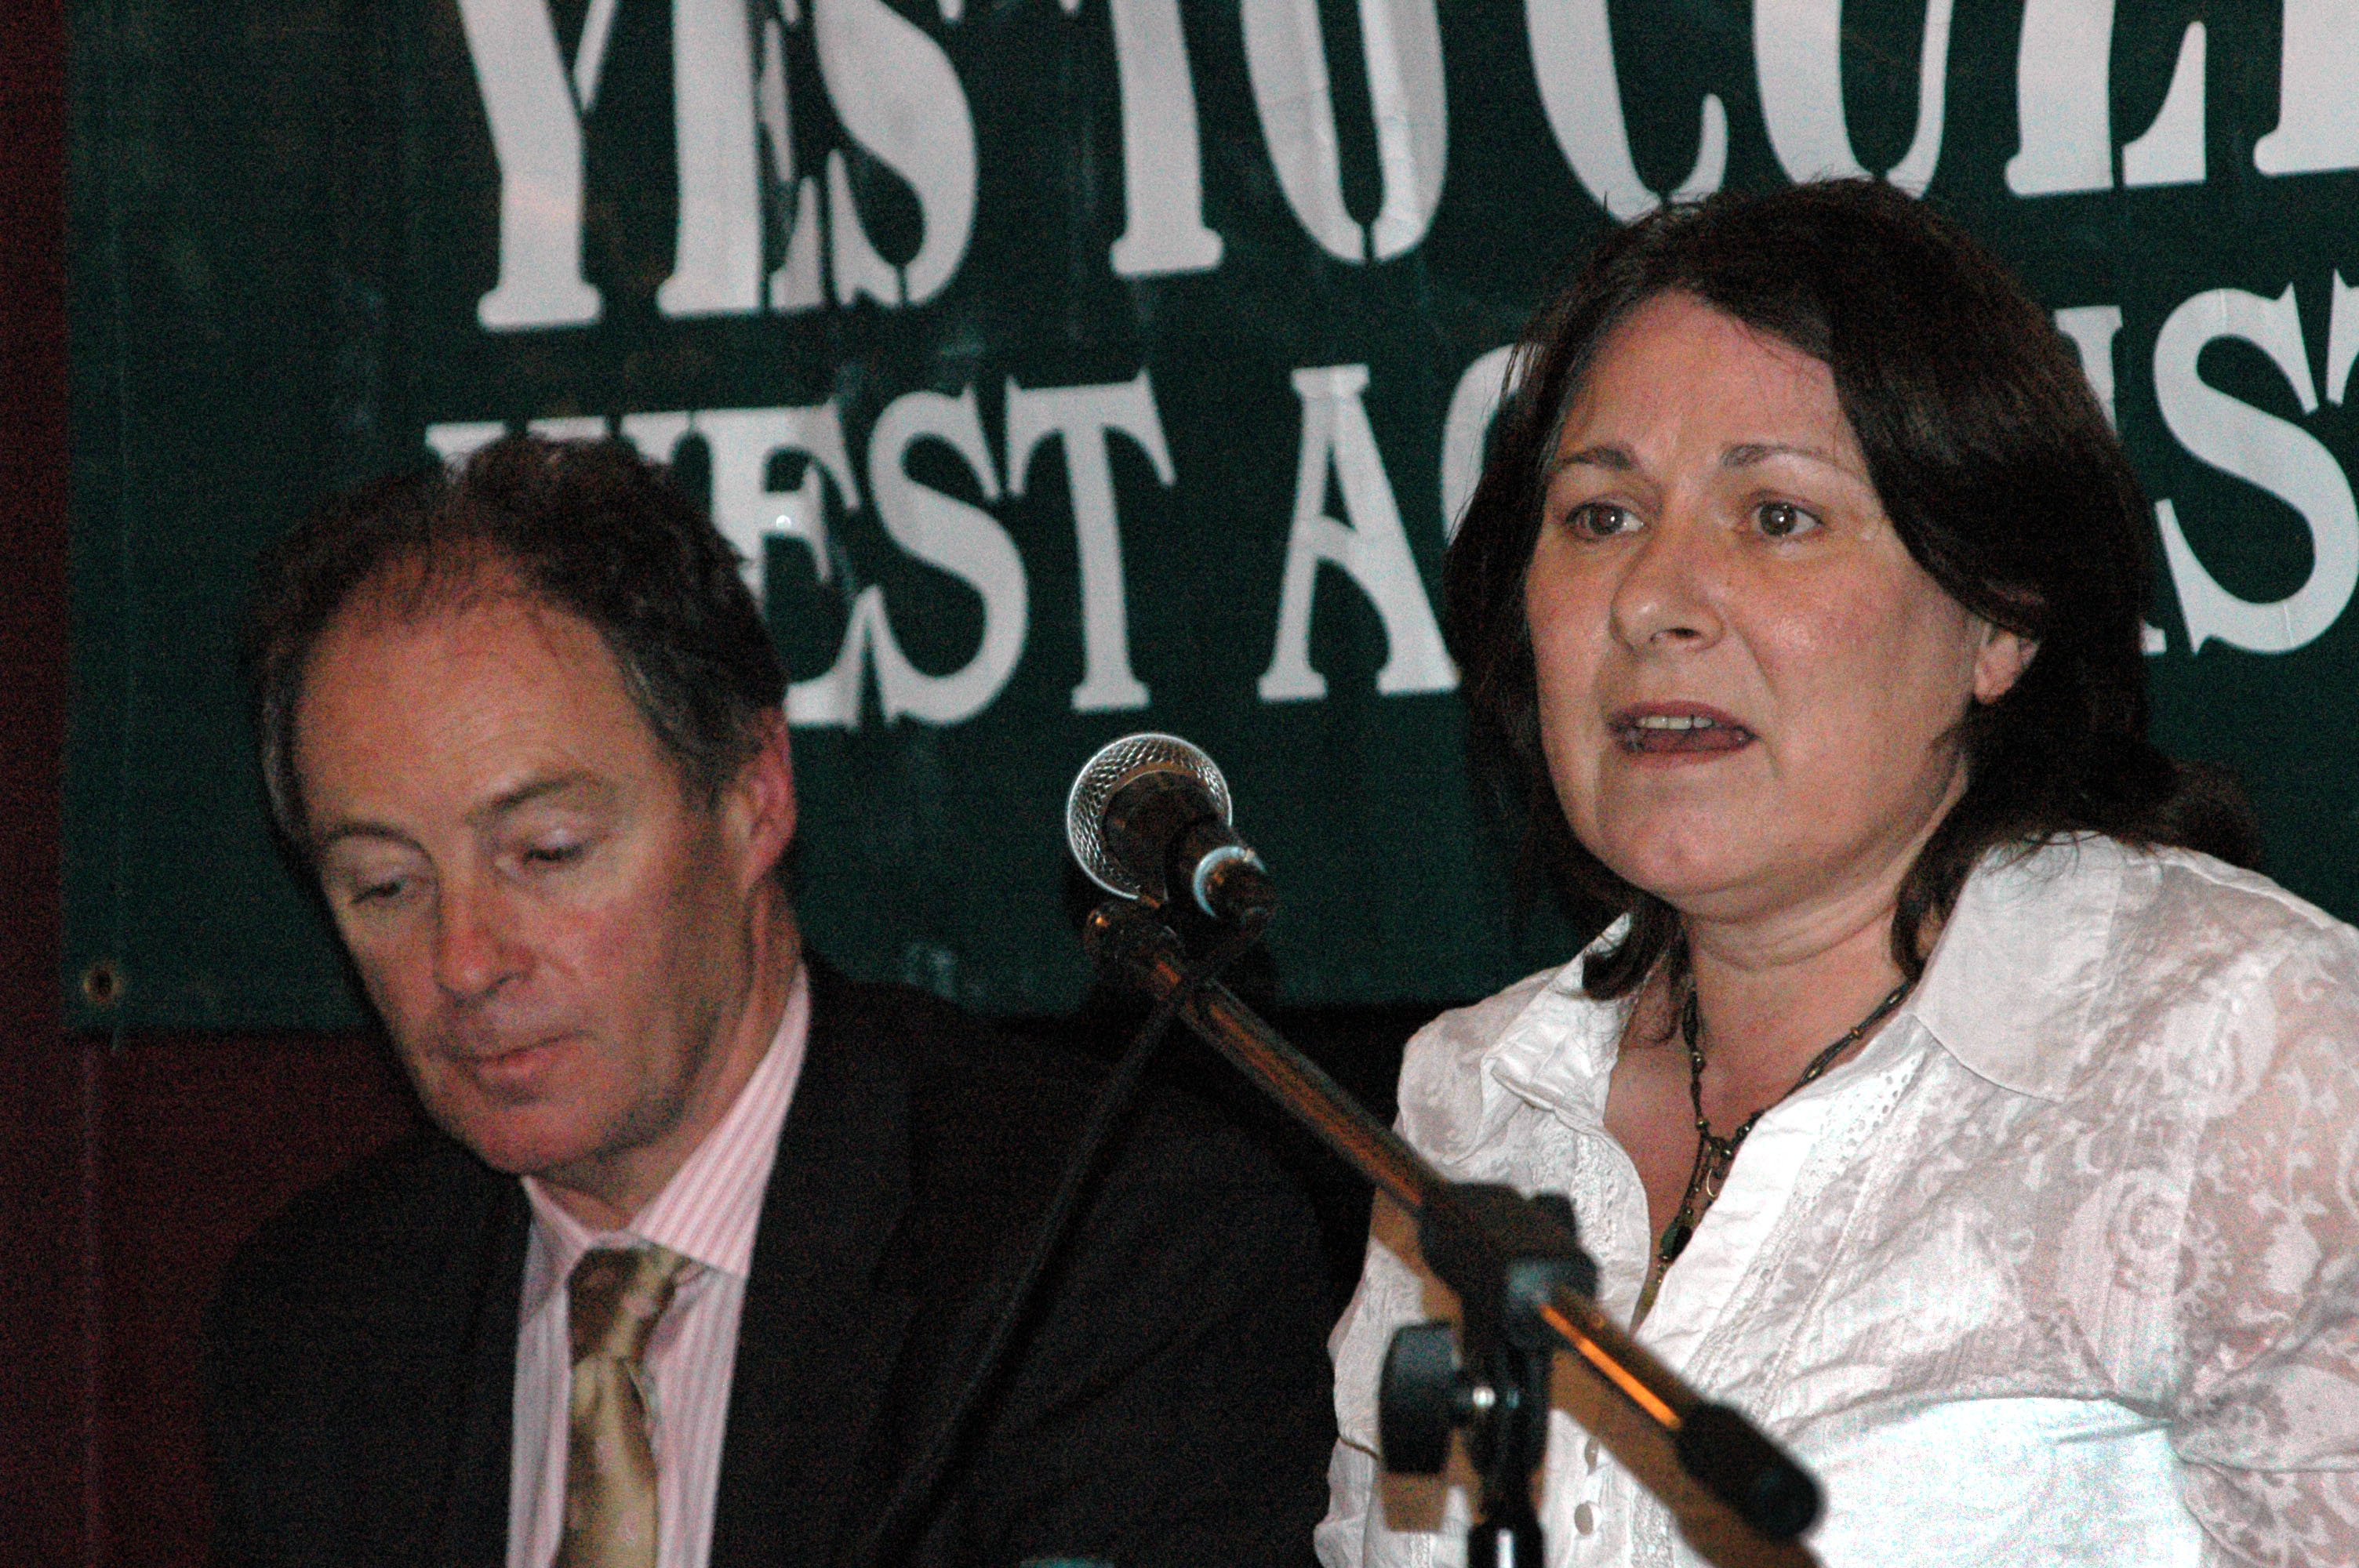 brian-kerr-and-una-marron-warn-march-2006